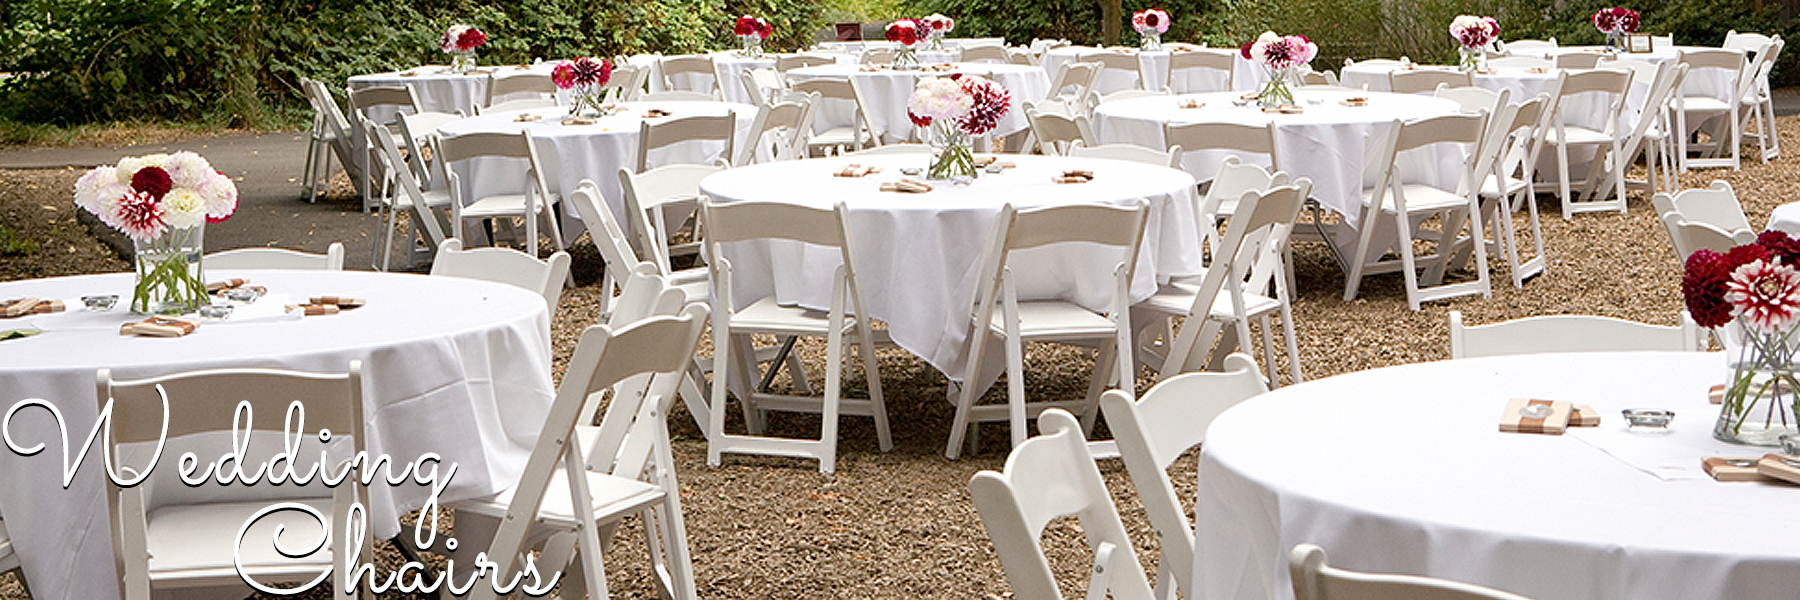 folding tables folding chairs chiavari chairs event furniture sales